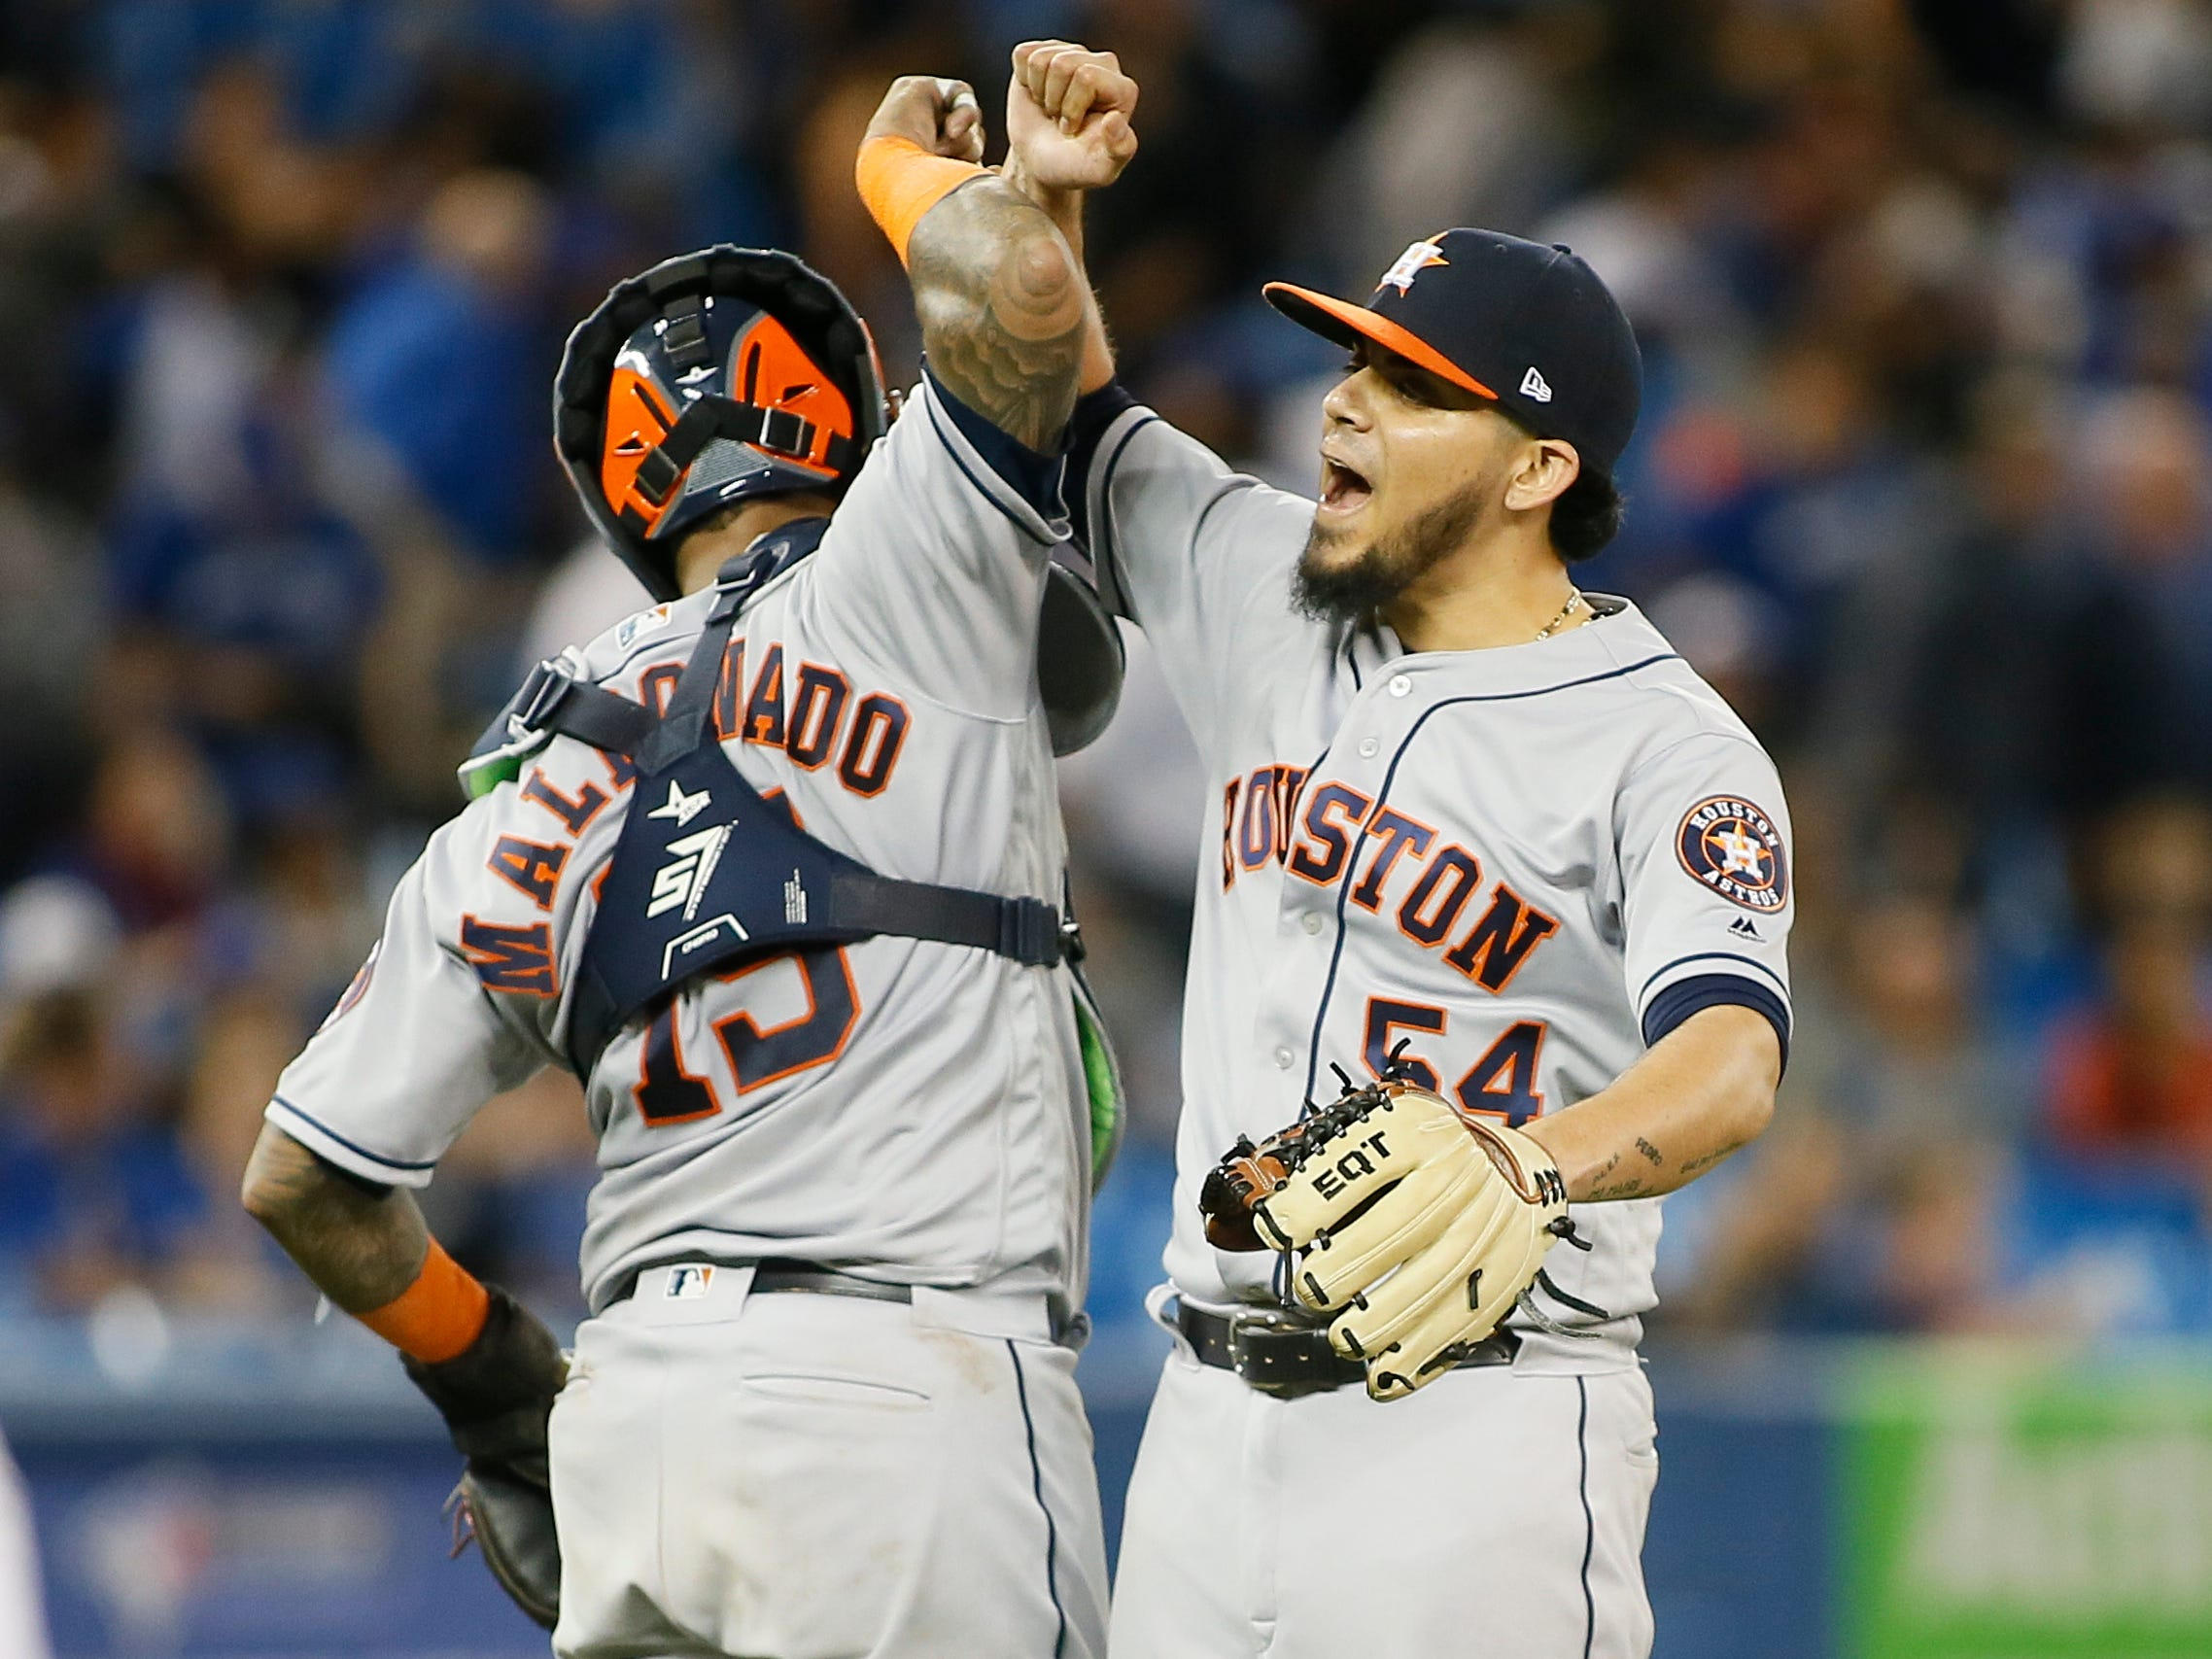 Houston Astros catcher Martin Maldonado (15) and relief pitcher Roberto Osuna (54) celebrate a win over the Toronto Blue Jays at Rogers Centre.